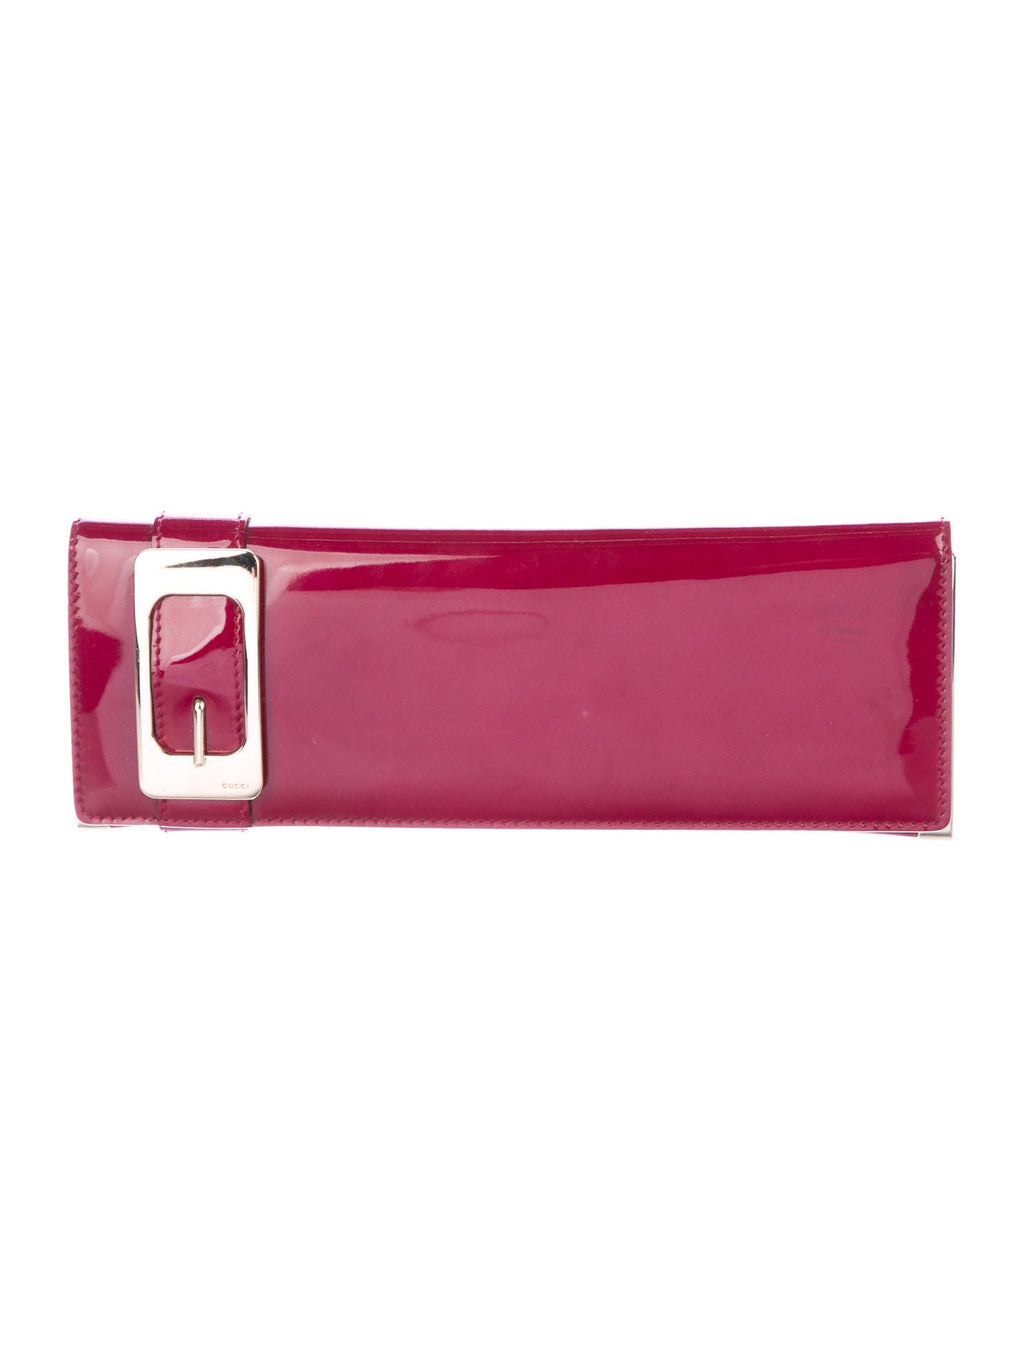 Gucci Romy Buckle Clutch